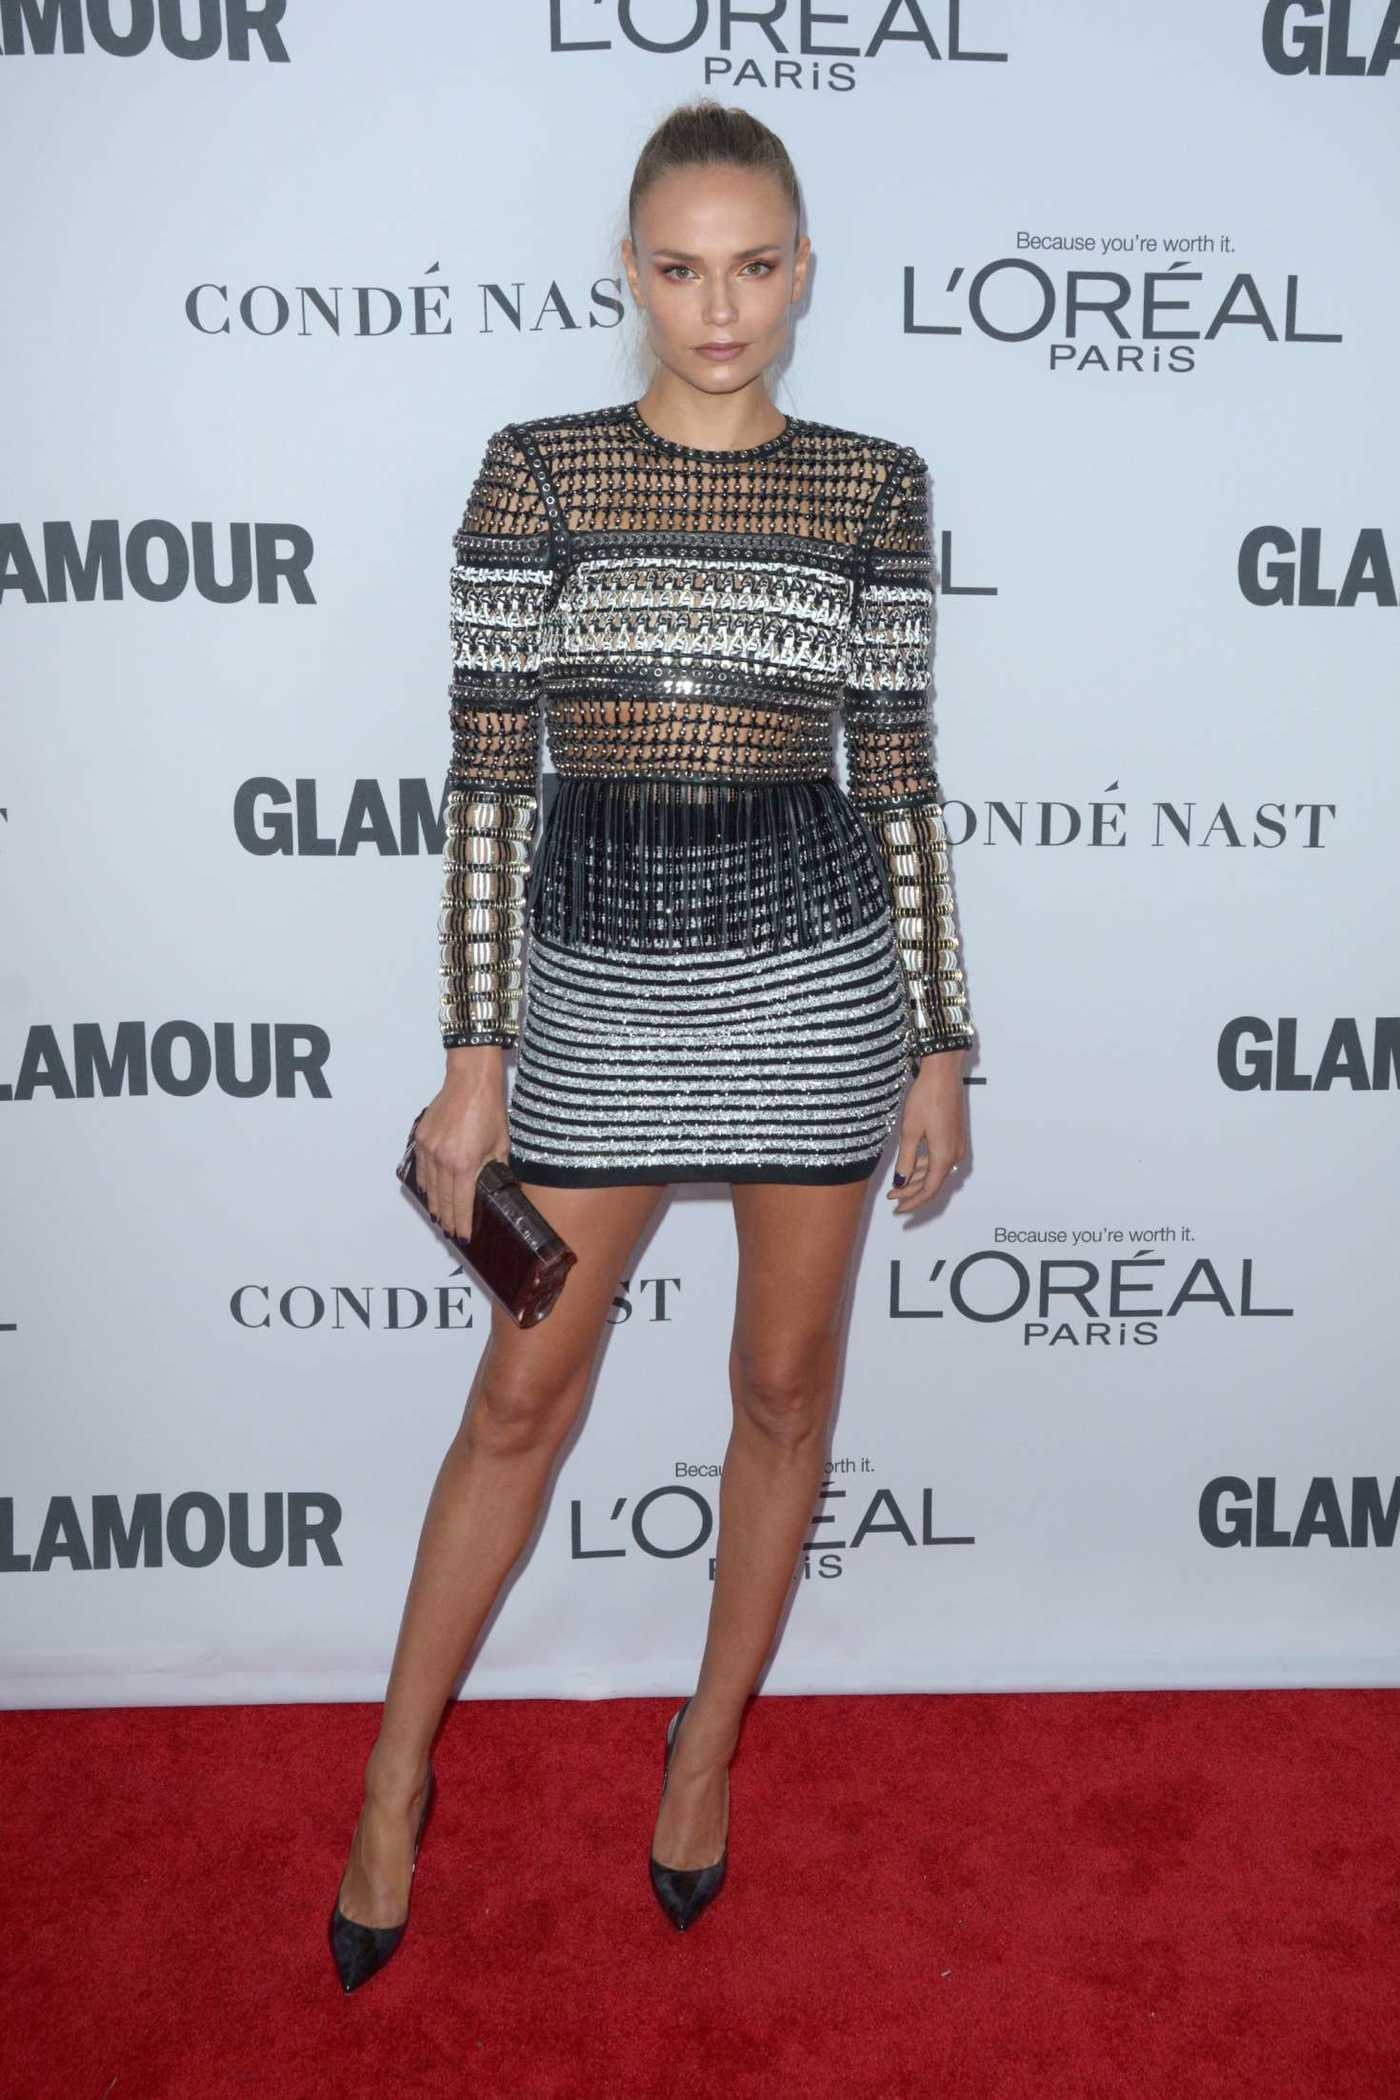 Natasha Poly at 2017 Glamour Women of the Year Awards in NYC 11/13/2017